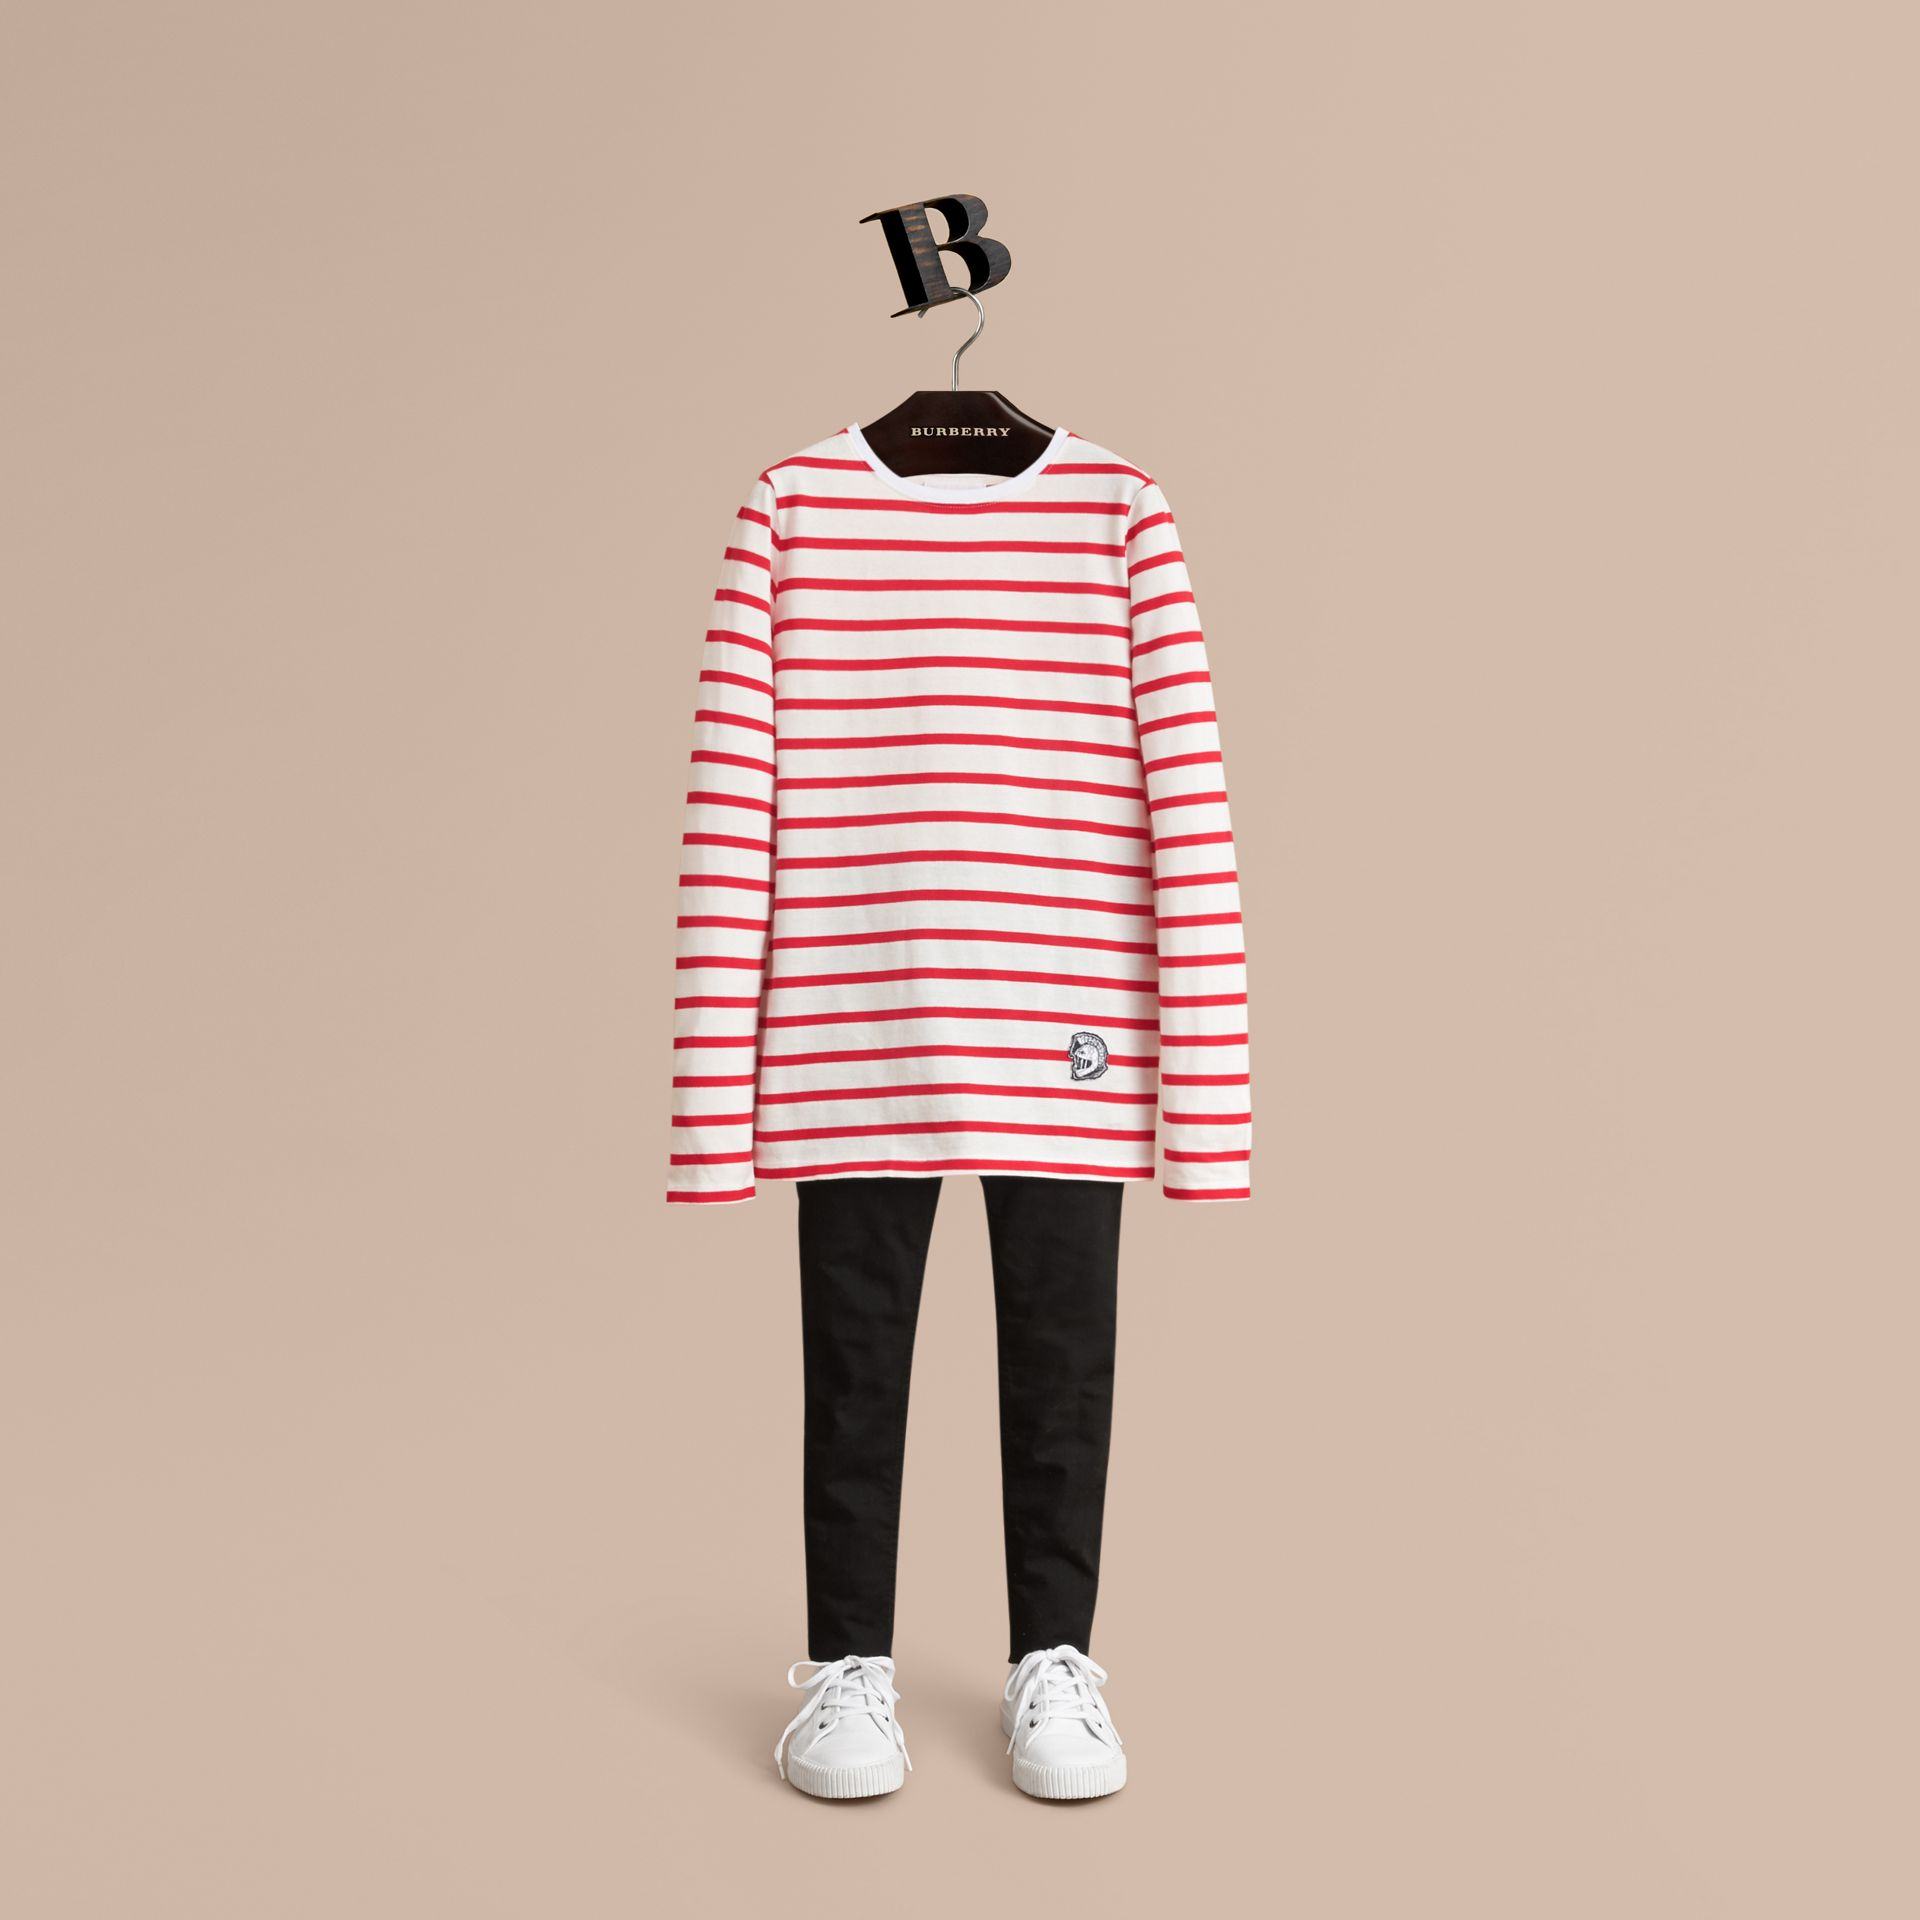 Unisex Pallas Helmet Motif Breton Stripe Cotton Top in Parade Red | Burberry - gallery image 1